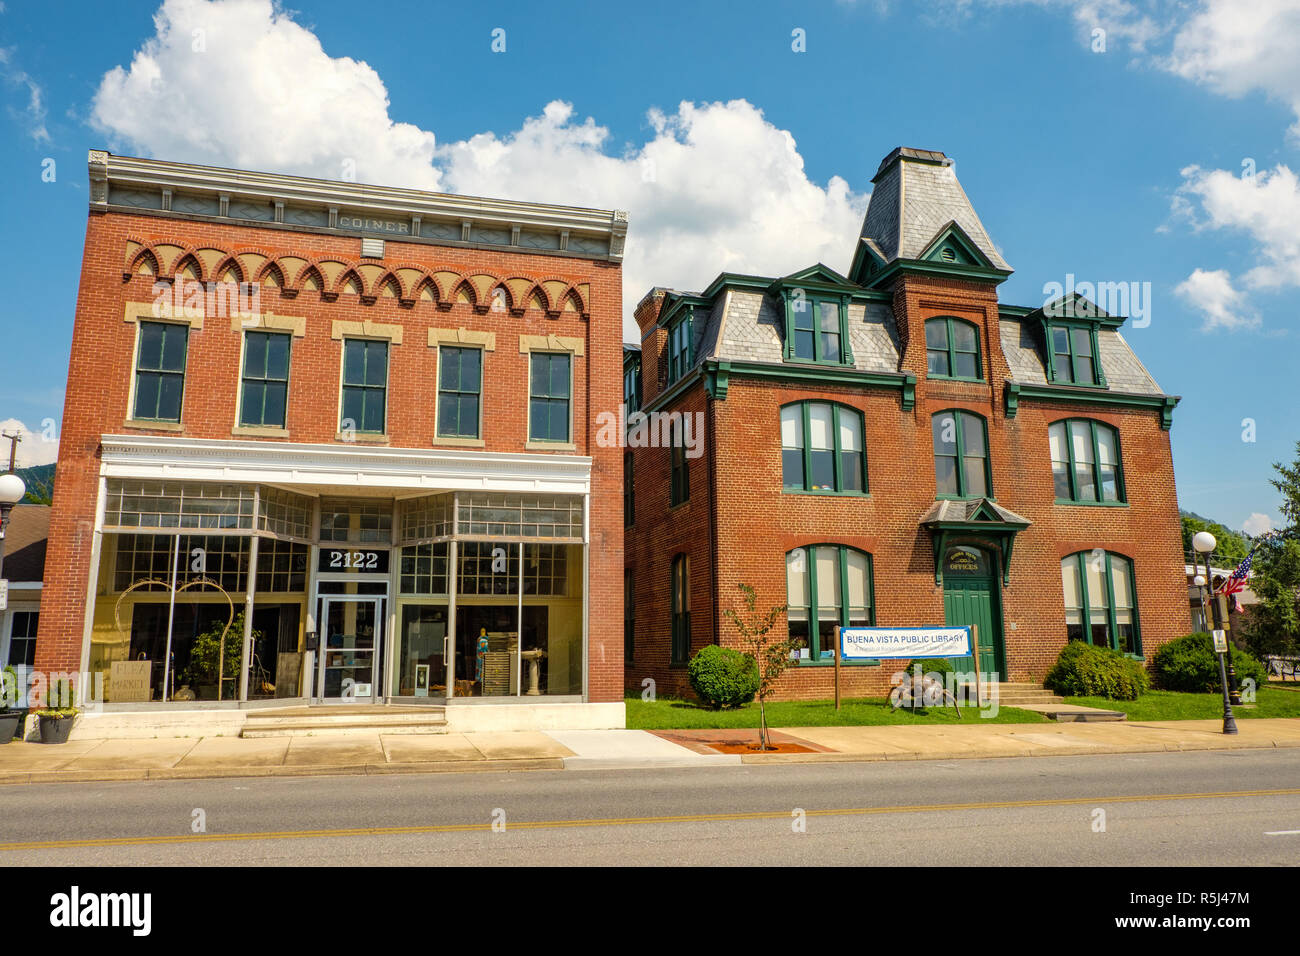 Coiner Building and Old Courthouse, 2110-2122 Magnolia Avenue, Buena Vista, Virginia - Stock Image